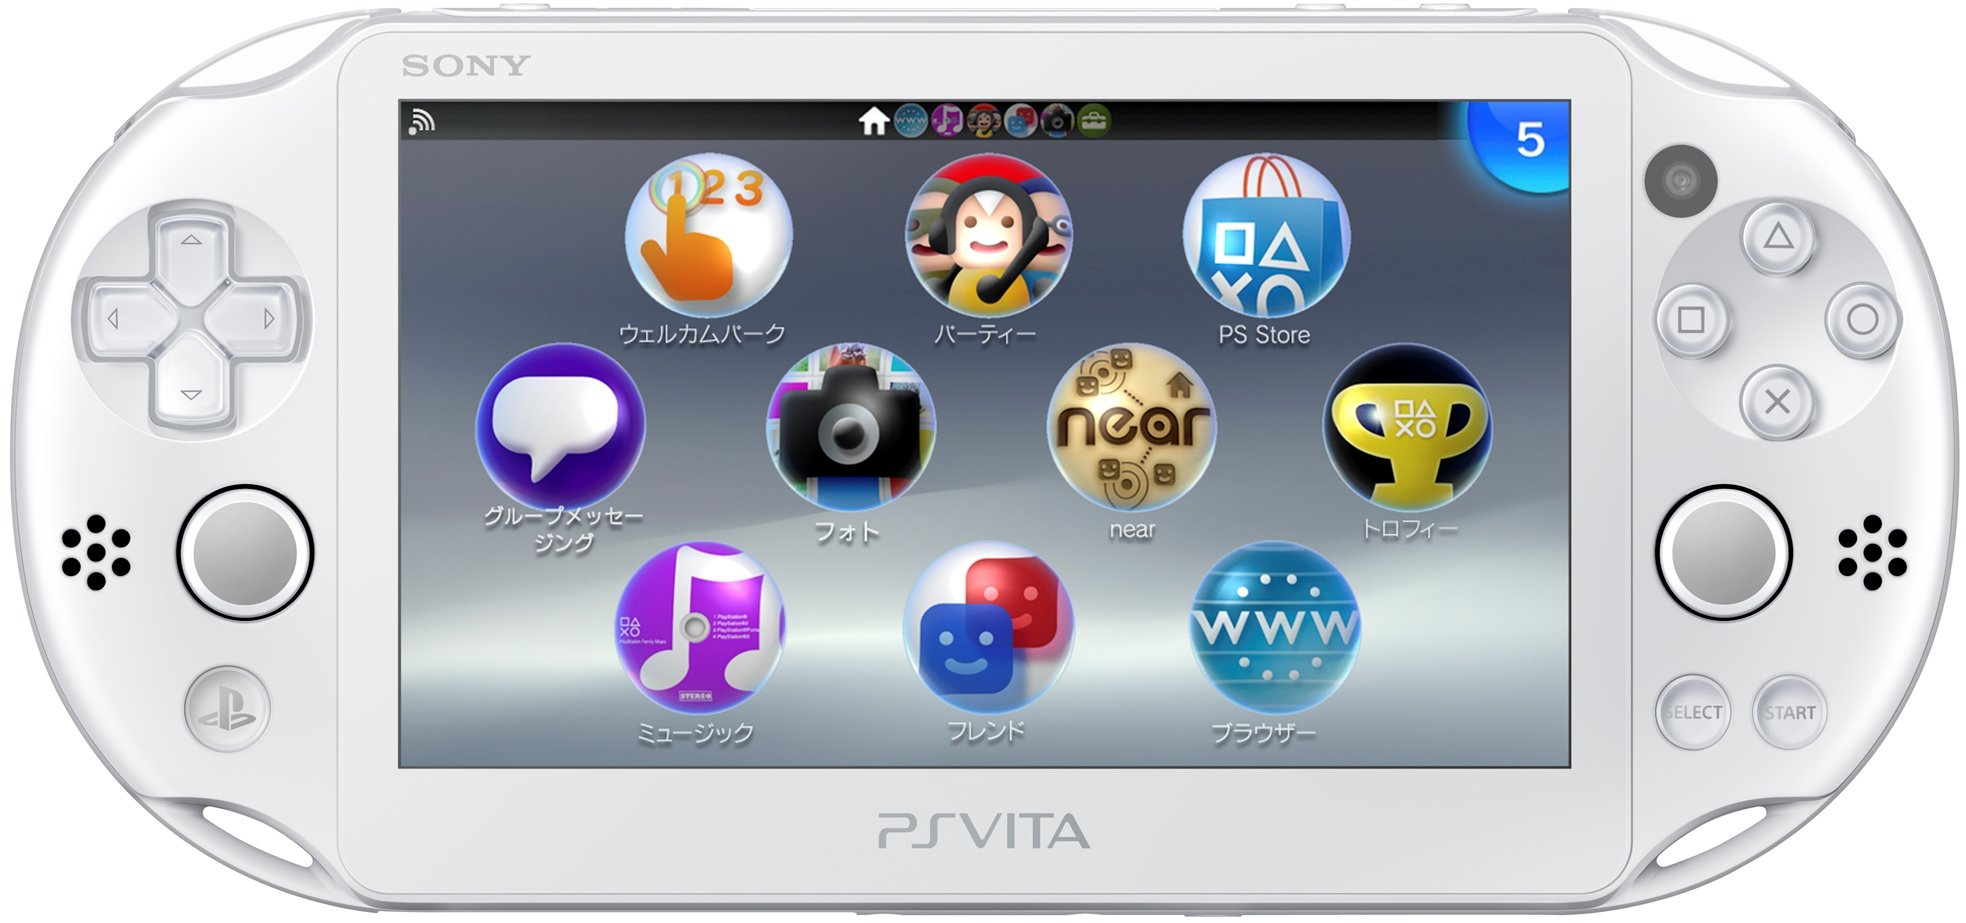 PlayStation Vita Wi-Fi White PCH-2000ZA12(Japan Import)